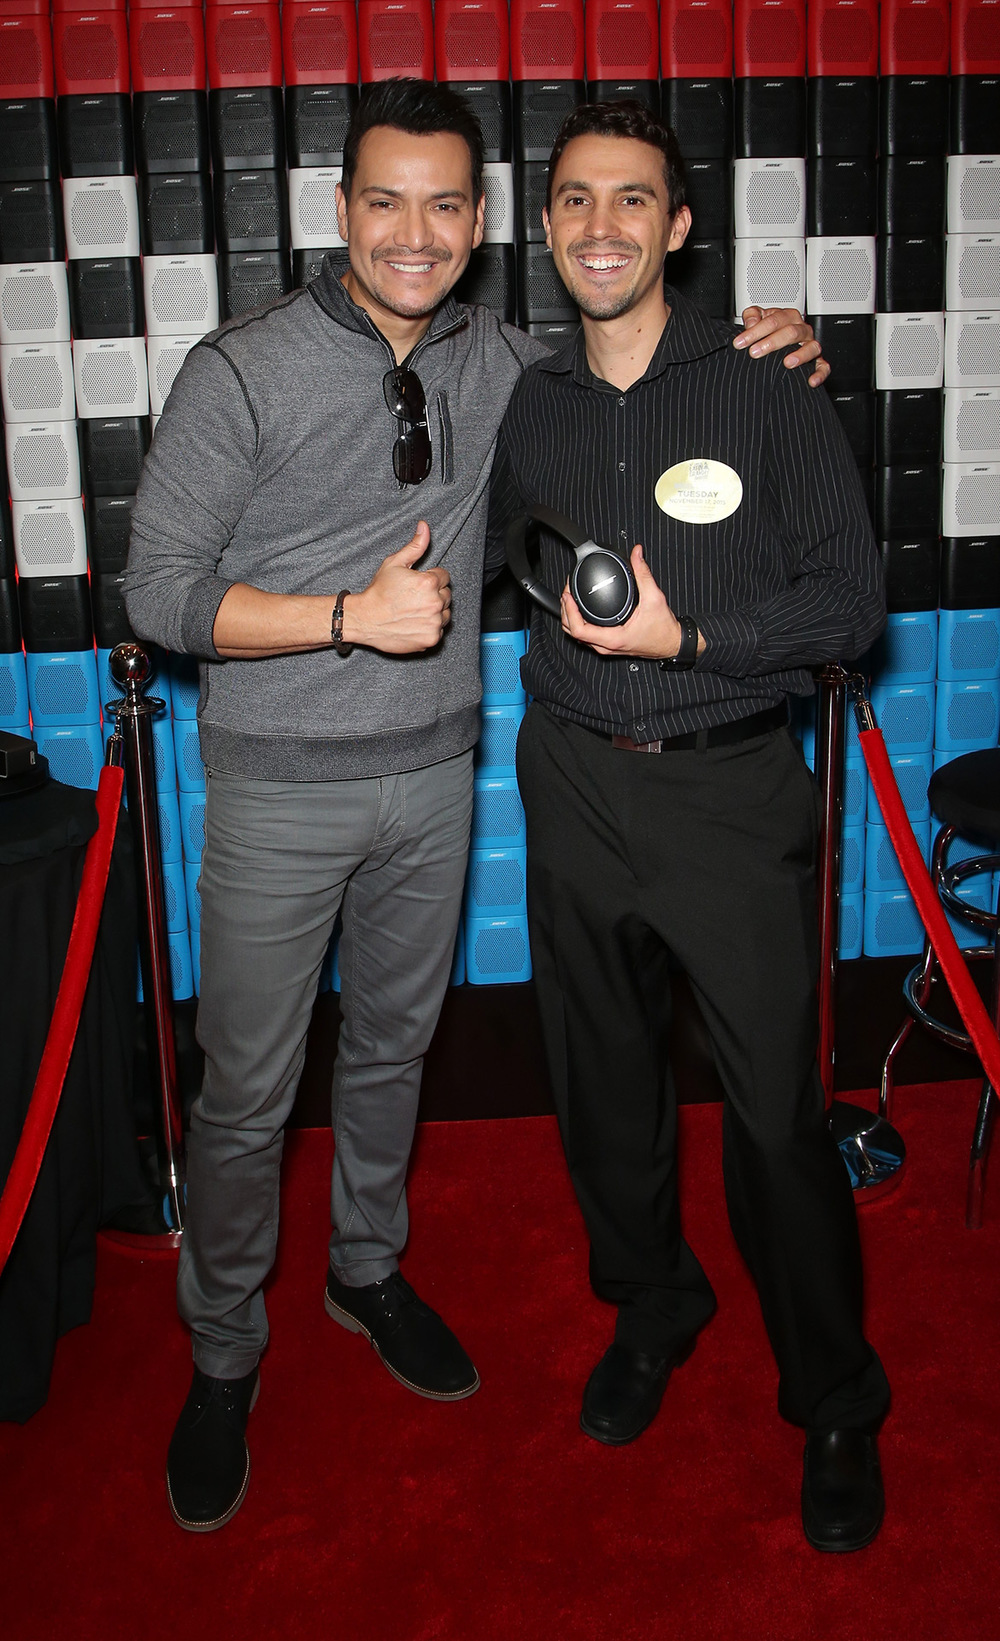 Jorge_at_Latin_Grammys_Gift_Lounge.jpg